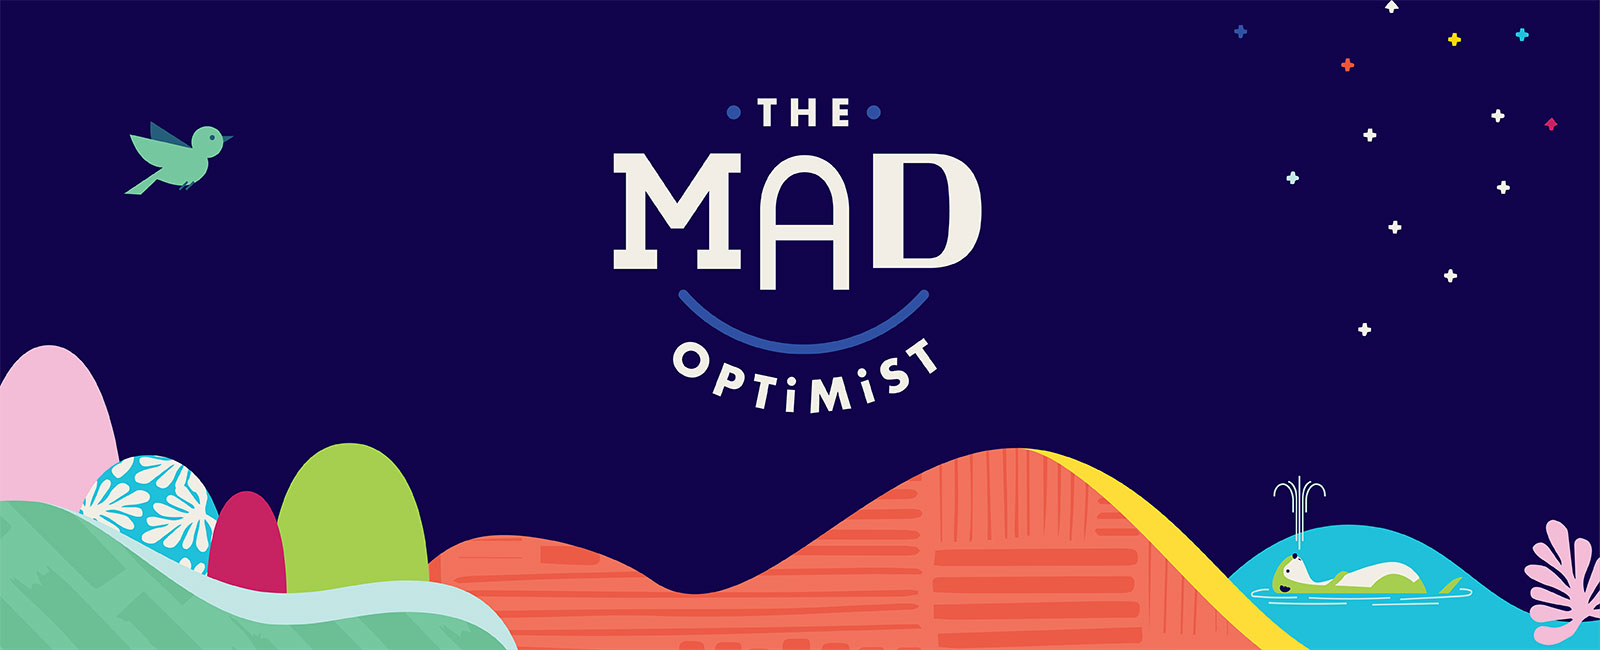 Bodycare Innovator, The Mad Optimist,  Launches Rebrand